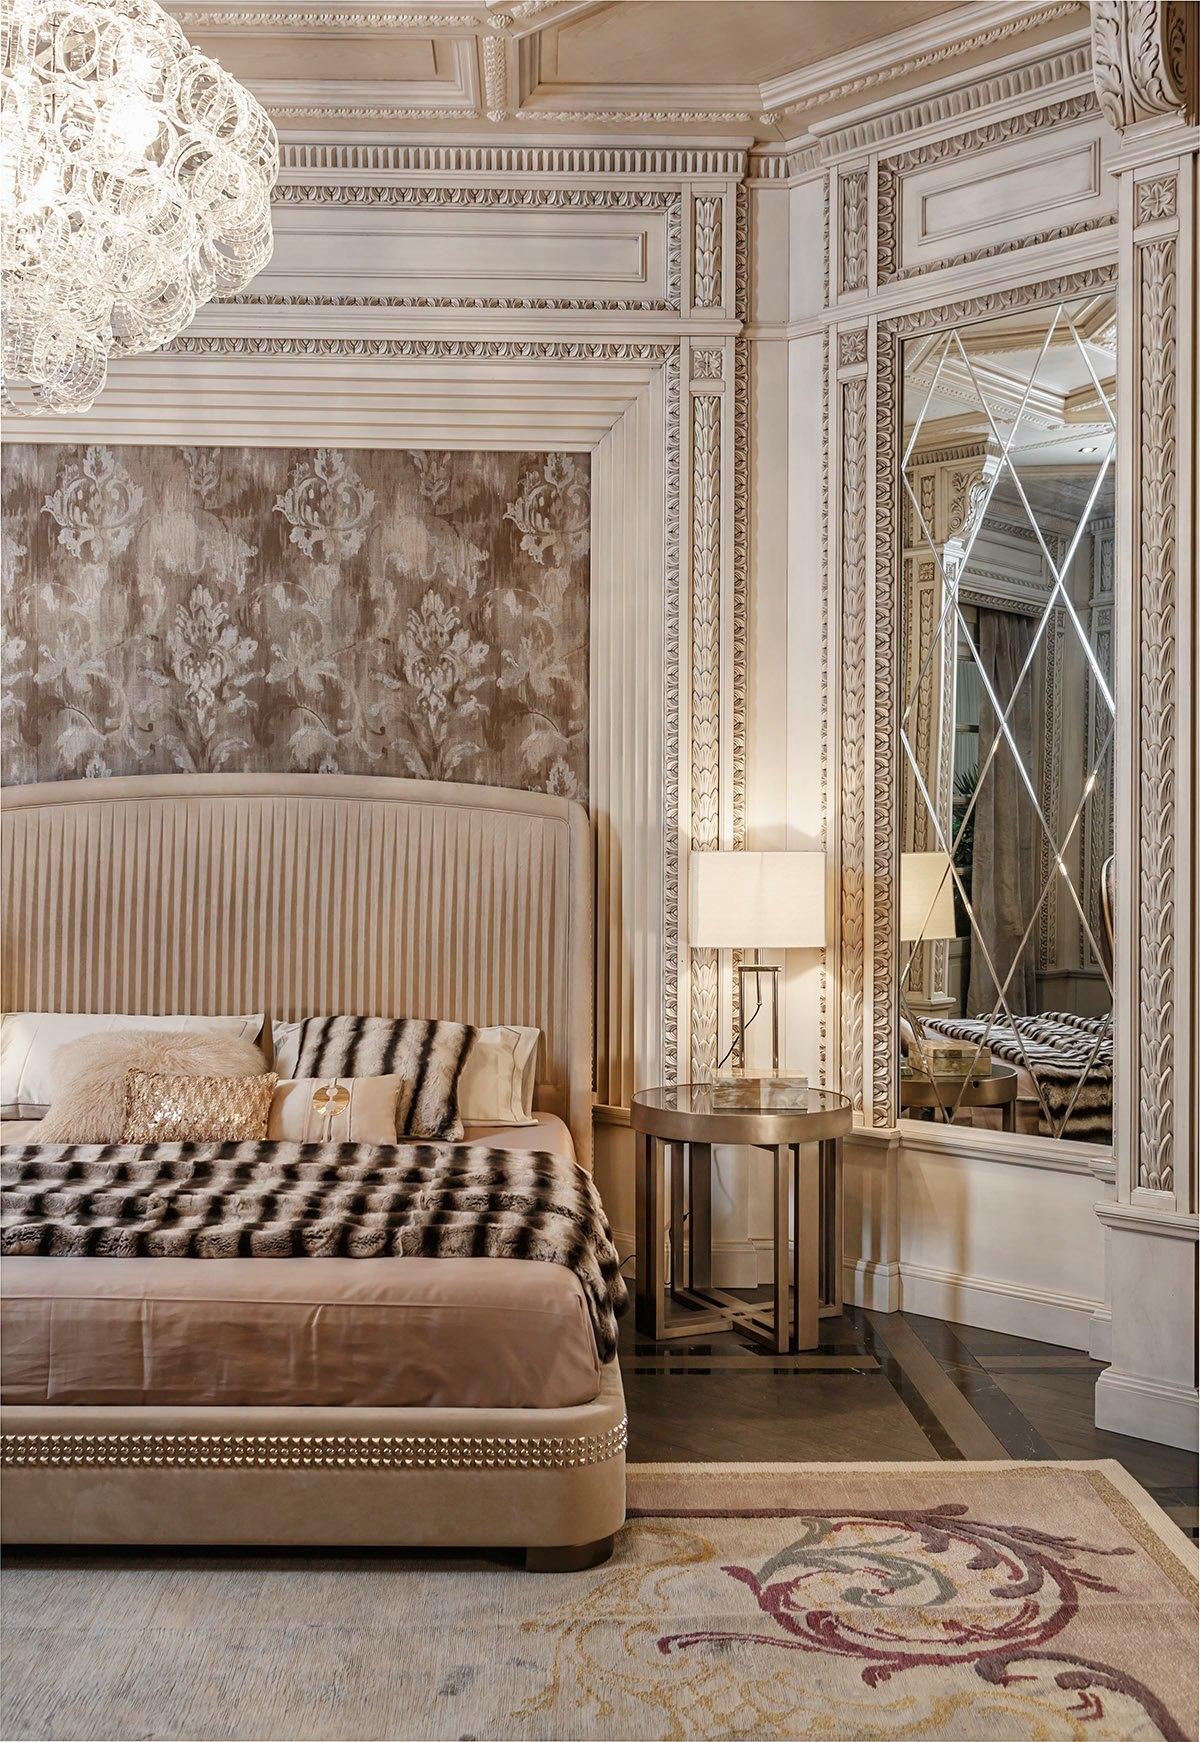 studs were not unheard of in neoclassical design but this bed takes